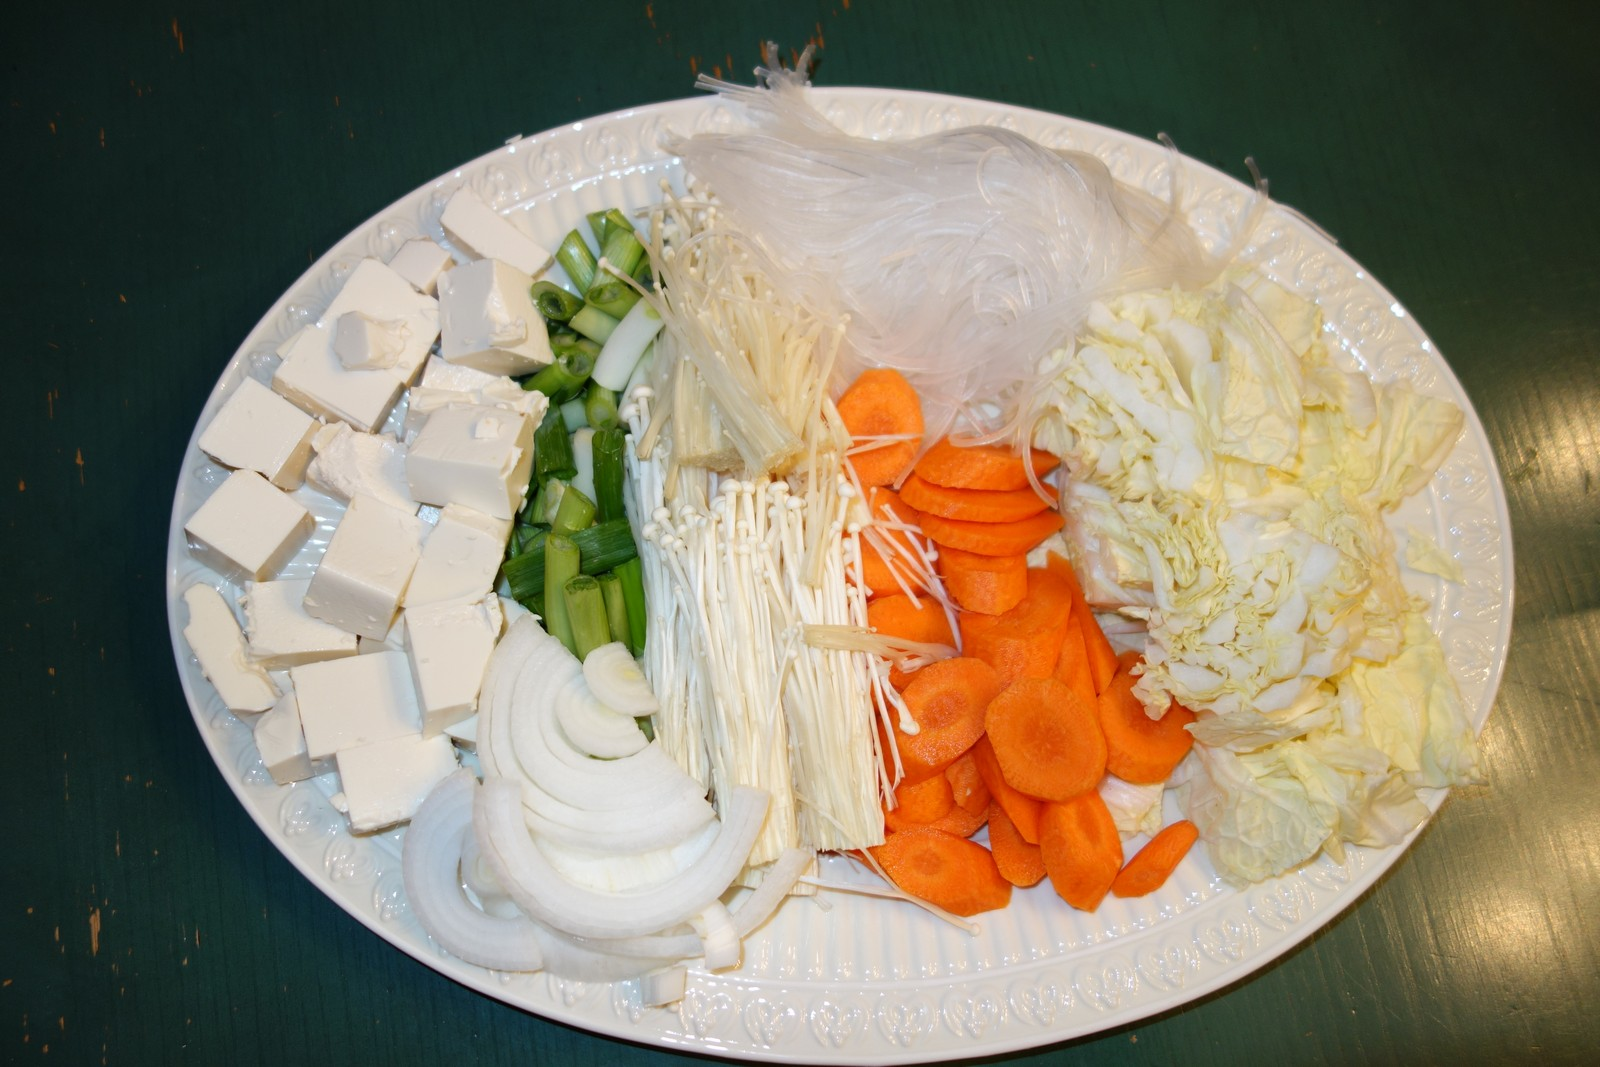 Here's how we prepare the vegetables and noodles for cooking.